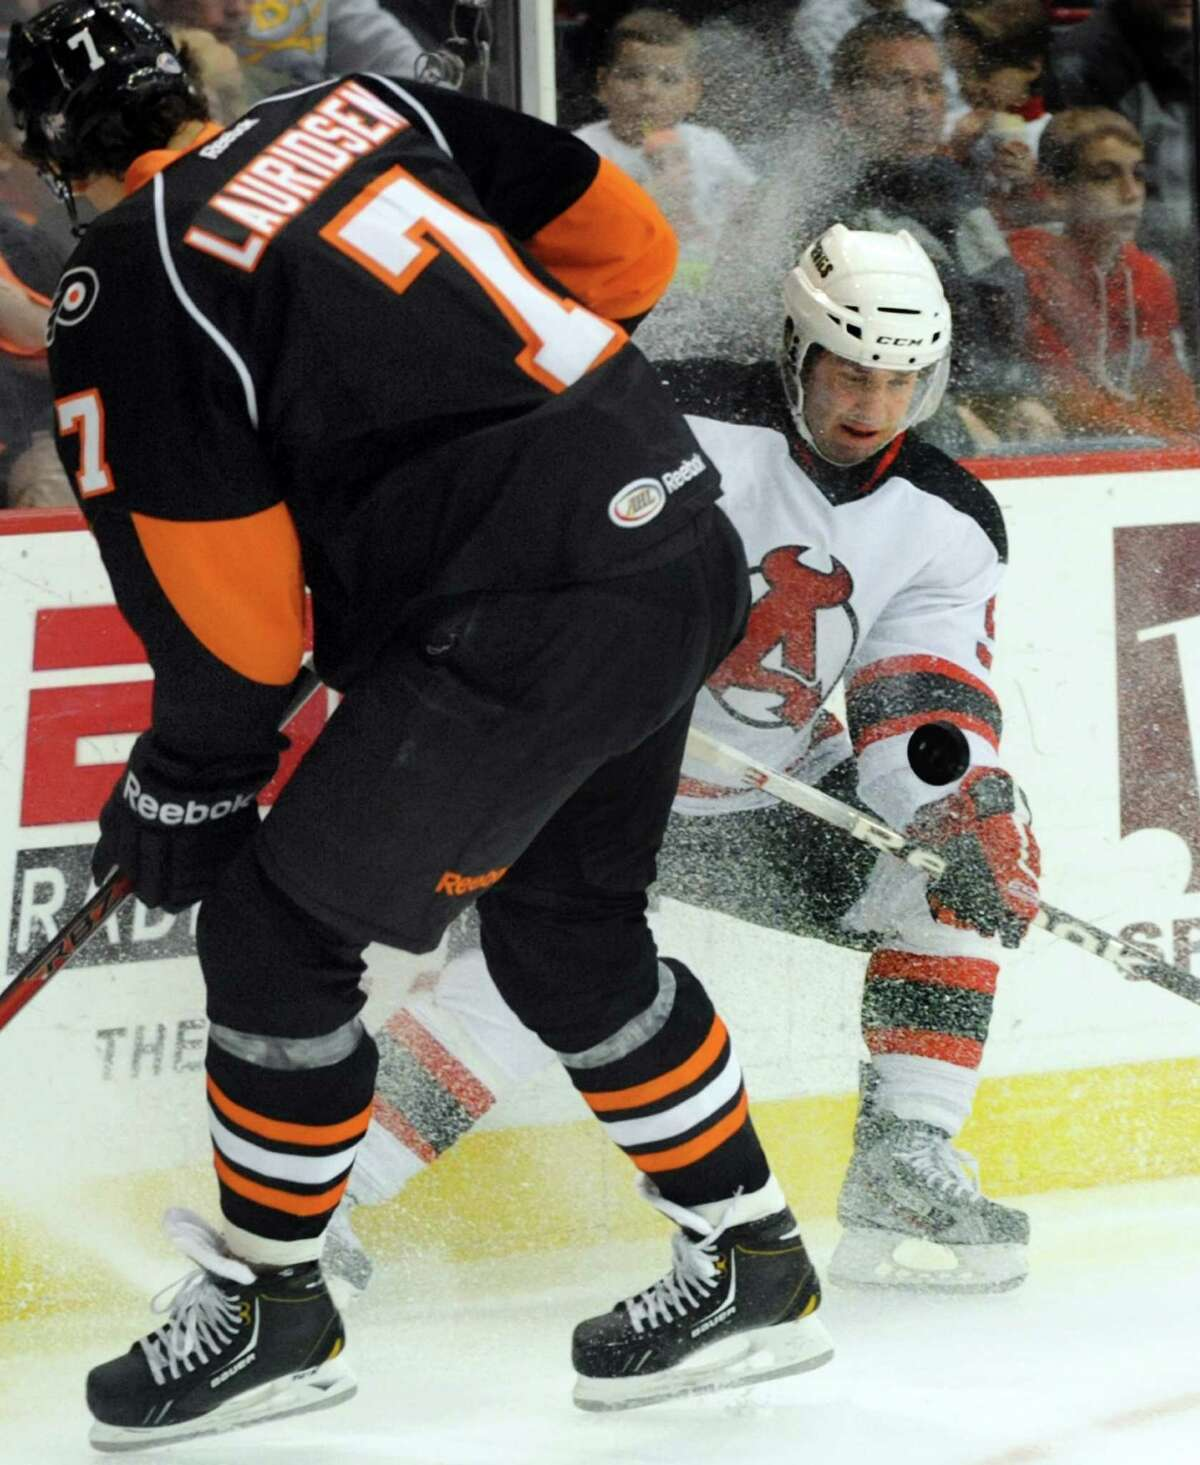 Devils' Joe Whitney (9), right, battles for a loose puck with Phantoms' Oliver Lauridsen (7) during their hockey game on Saturday, Jan. 26, 2013, at Times Union Center in Albany, N.Y. (Cindy Schultz / Times Union)